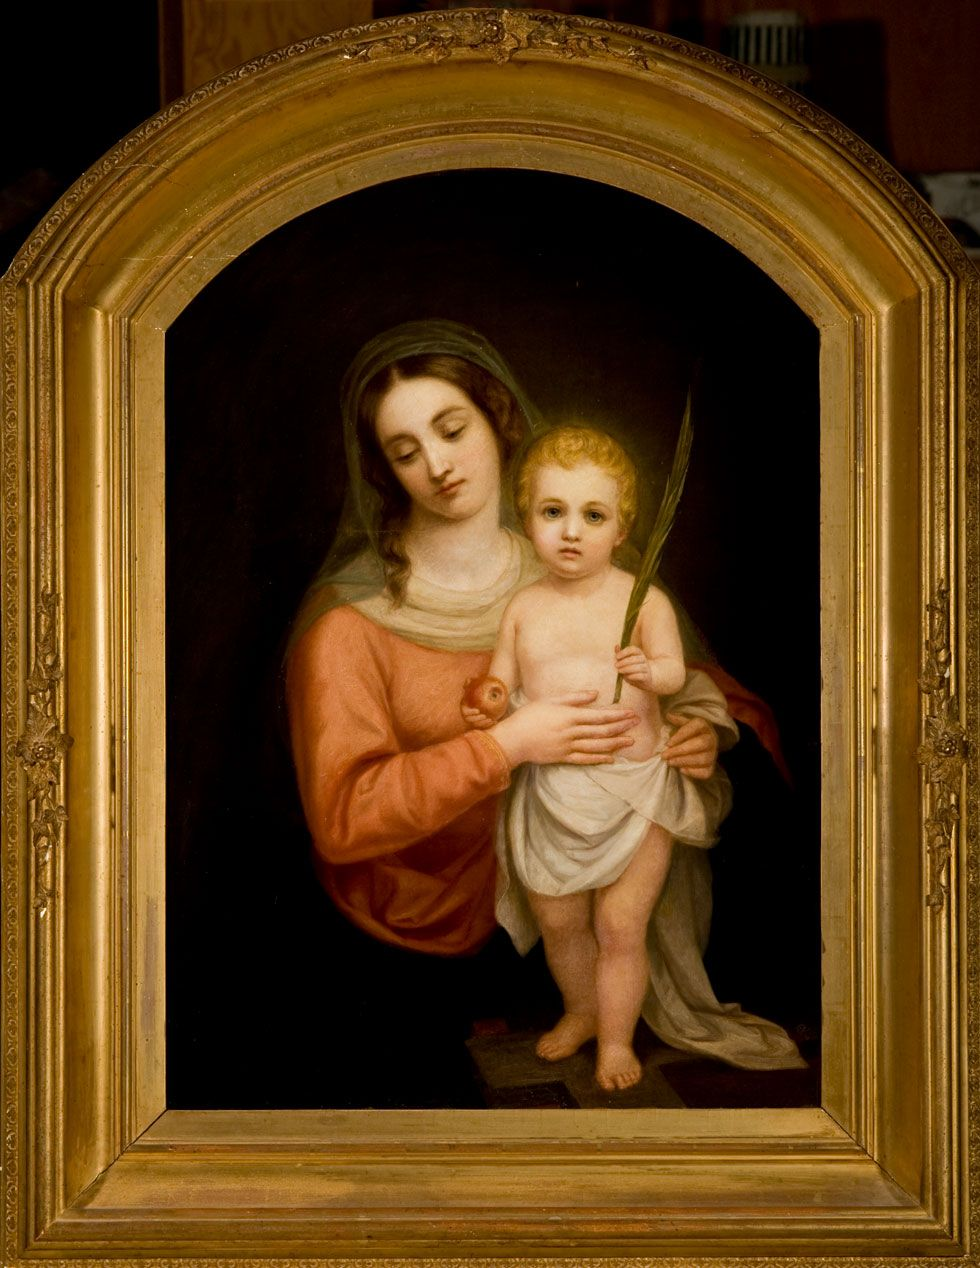 Madonna And Child C 1880 Oil On Canvas Johannes Adam Simon Oertel German American 1823 1909 Gif Madonna And Child Botticelli Paintings Watercolor Canvas